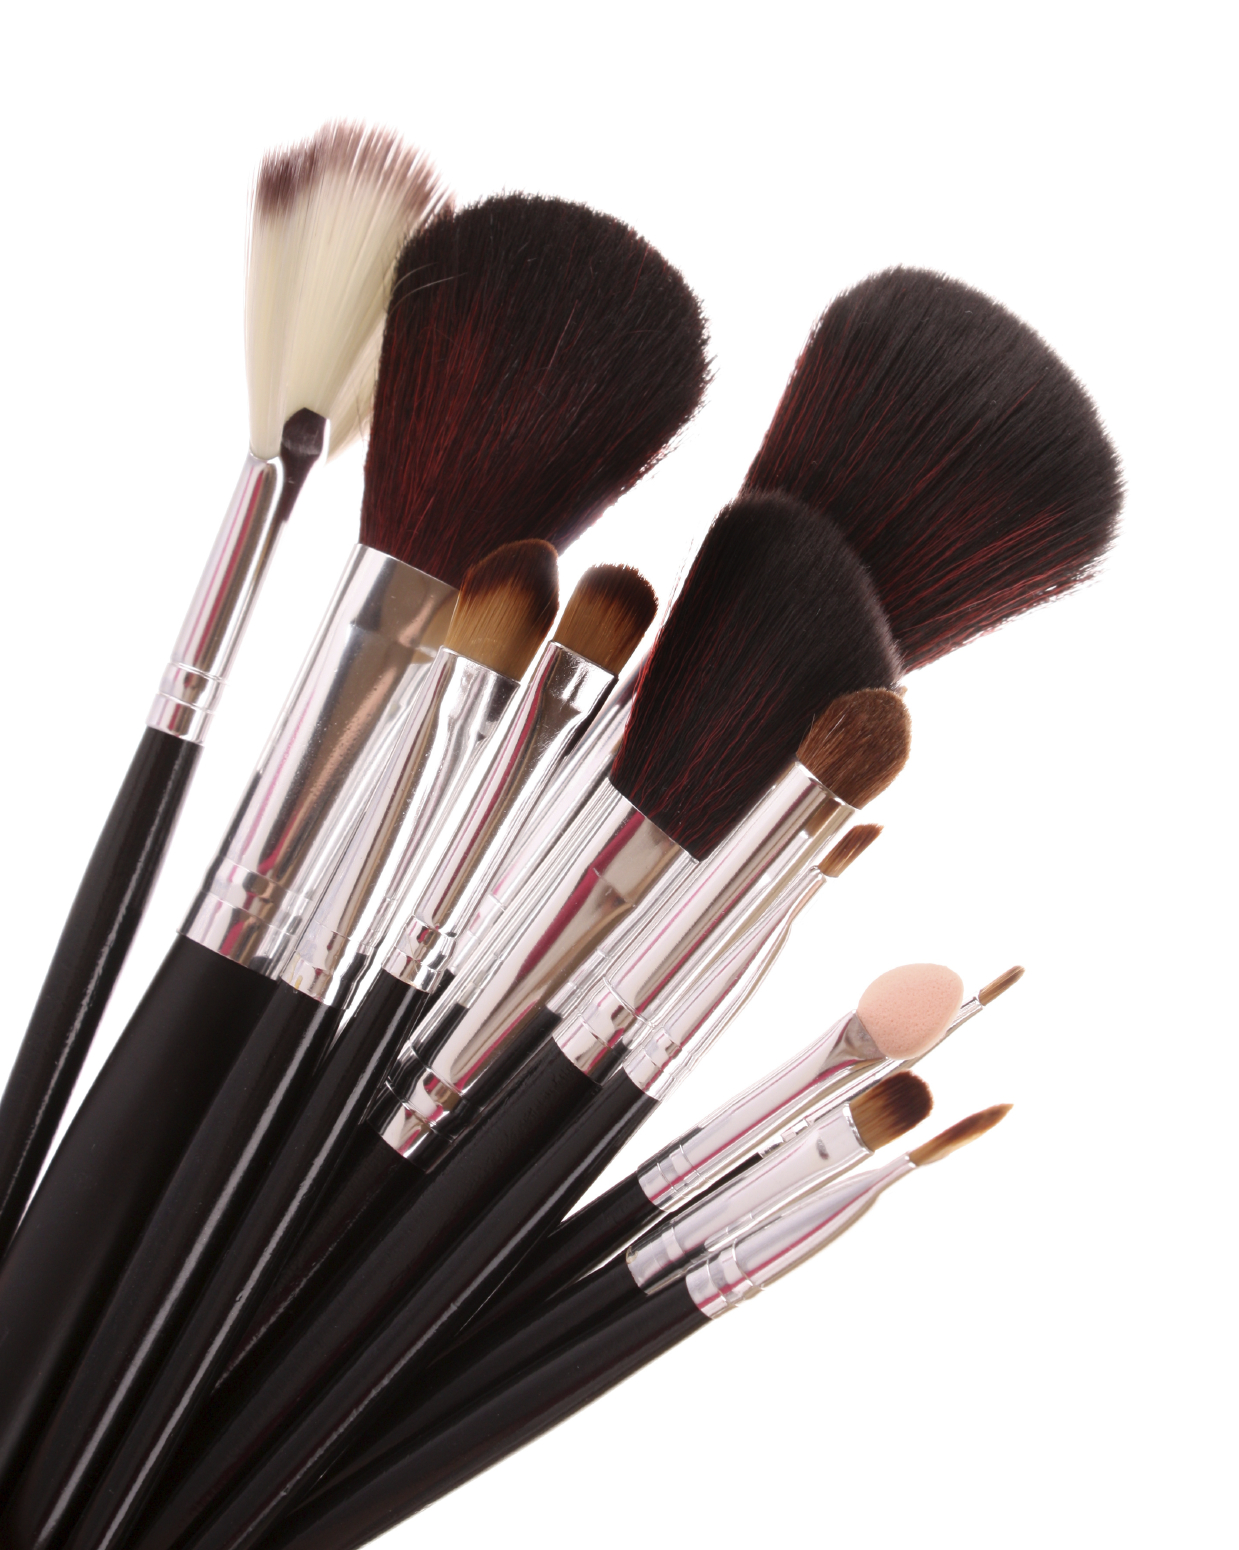 Makeup Brushes Sponge Collection: Makeup Brushes Wallpapers High Quality